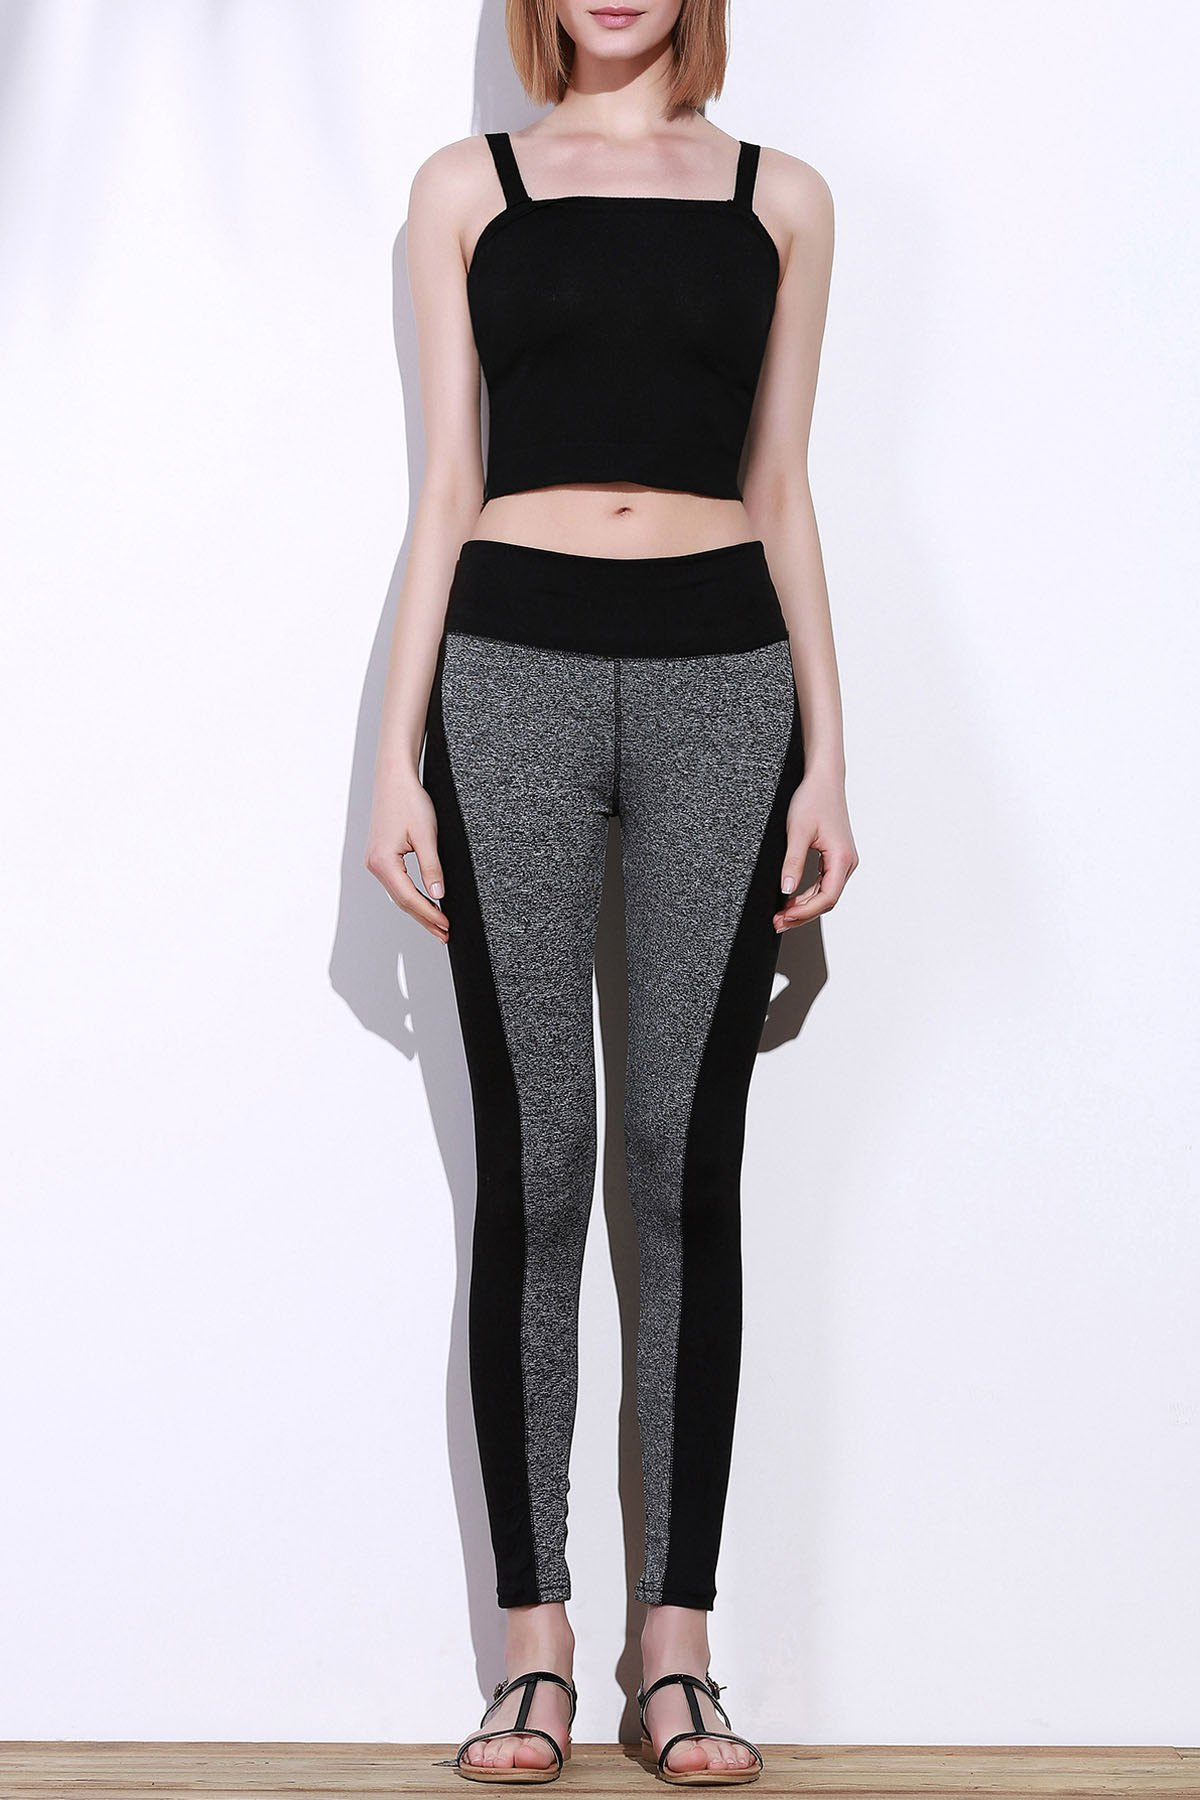 Active Stretchy Skinny Black and Gray Spliced Women's Pants - BLACK/GREY M